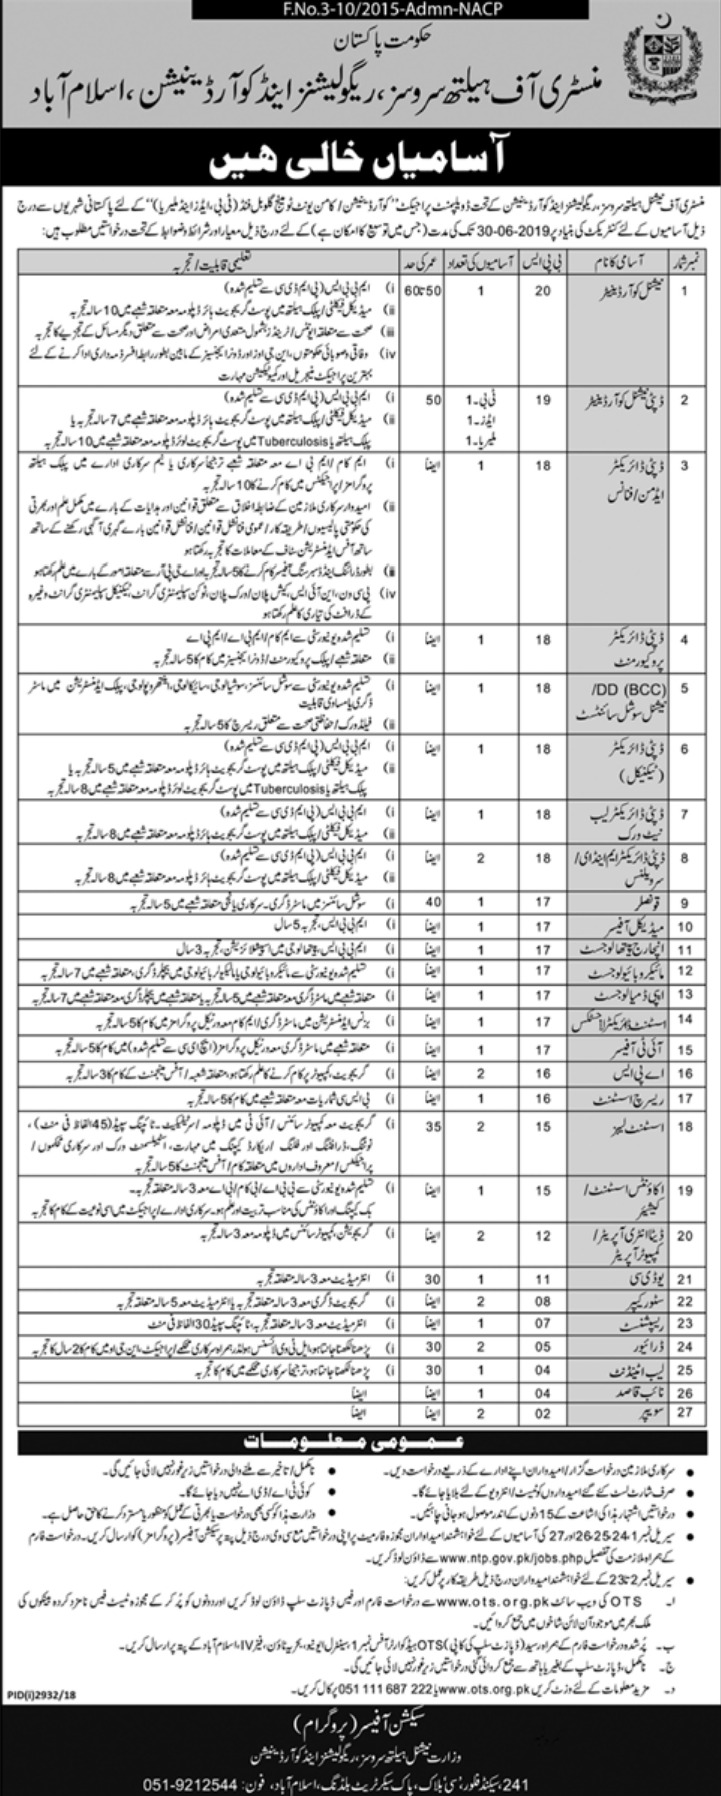 Ministry of Health Services Regulations & Coordination Islamabad Jobs 2018